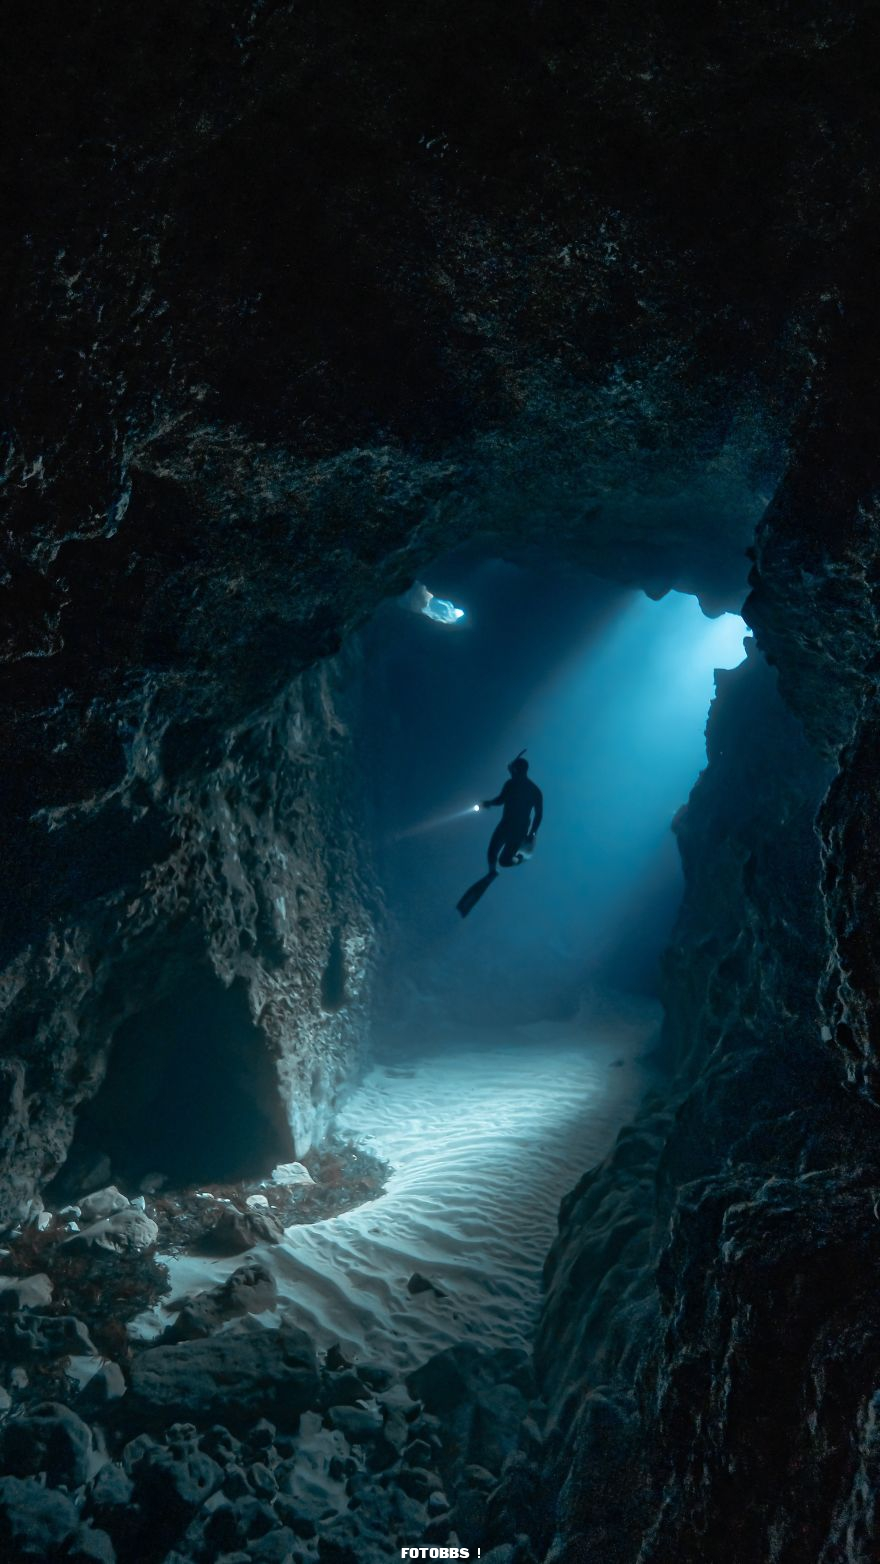 Freediving-underwater-caves-by-victordevalles-Spain-5e58e3007147a__880.jpg